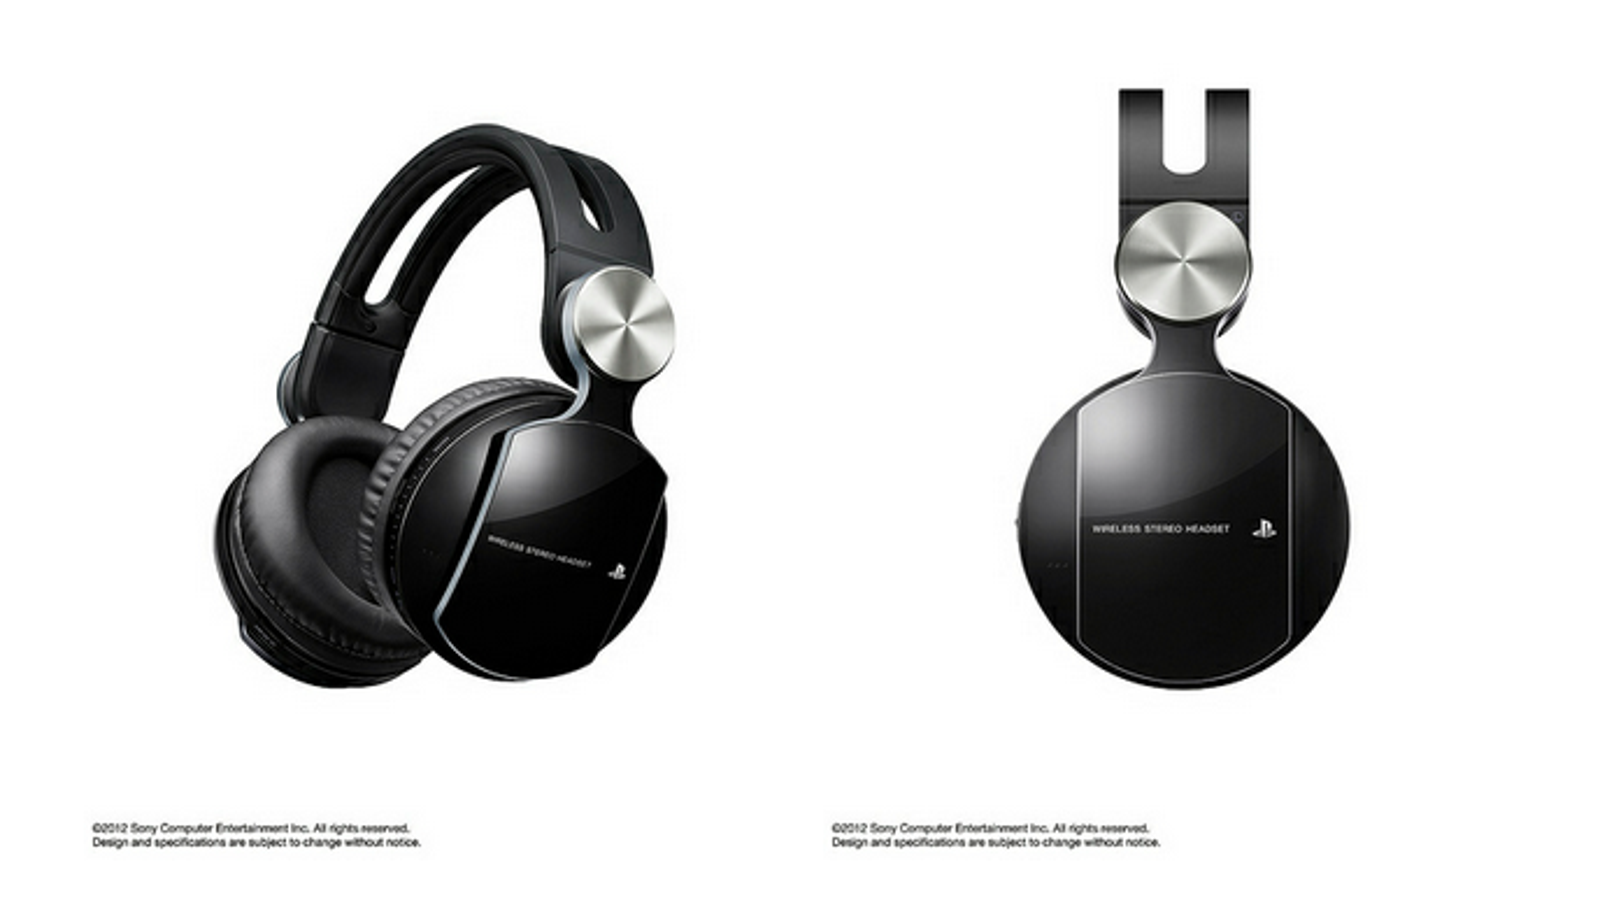 completely wireless earbuds under 50 - Sony PS3's New Gaming Headset Brings Extra Bass